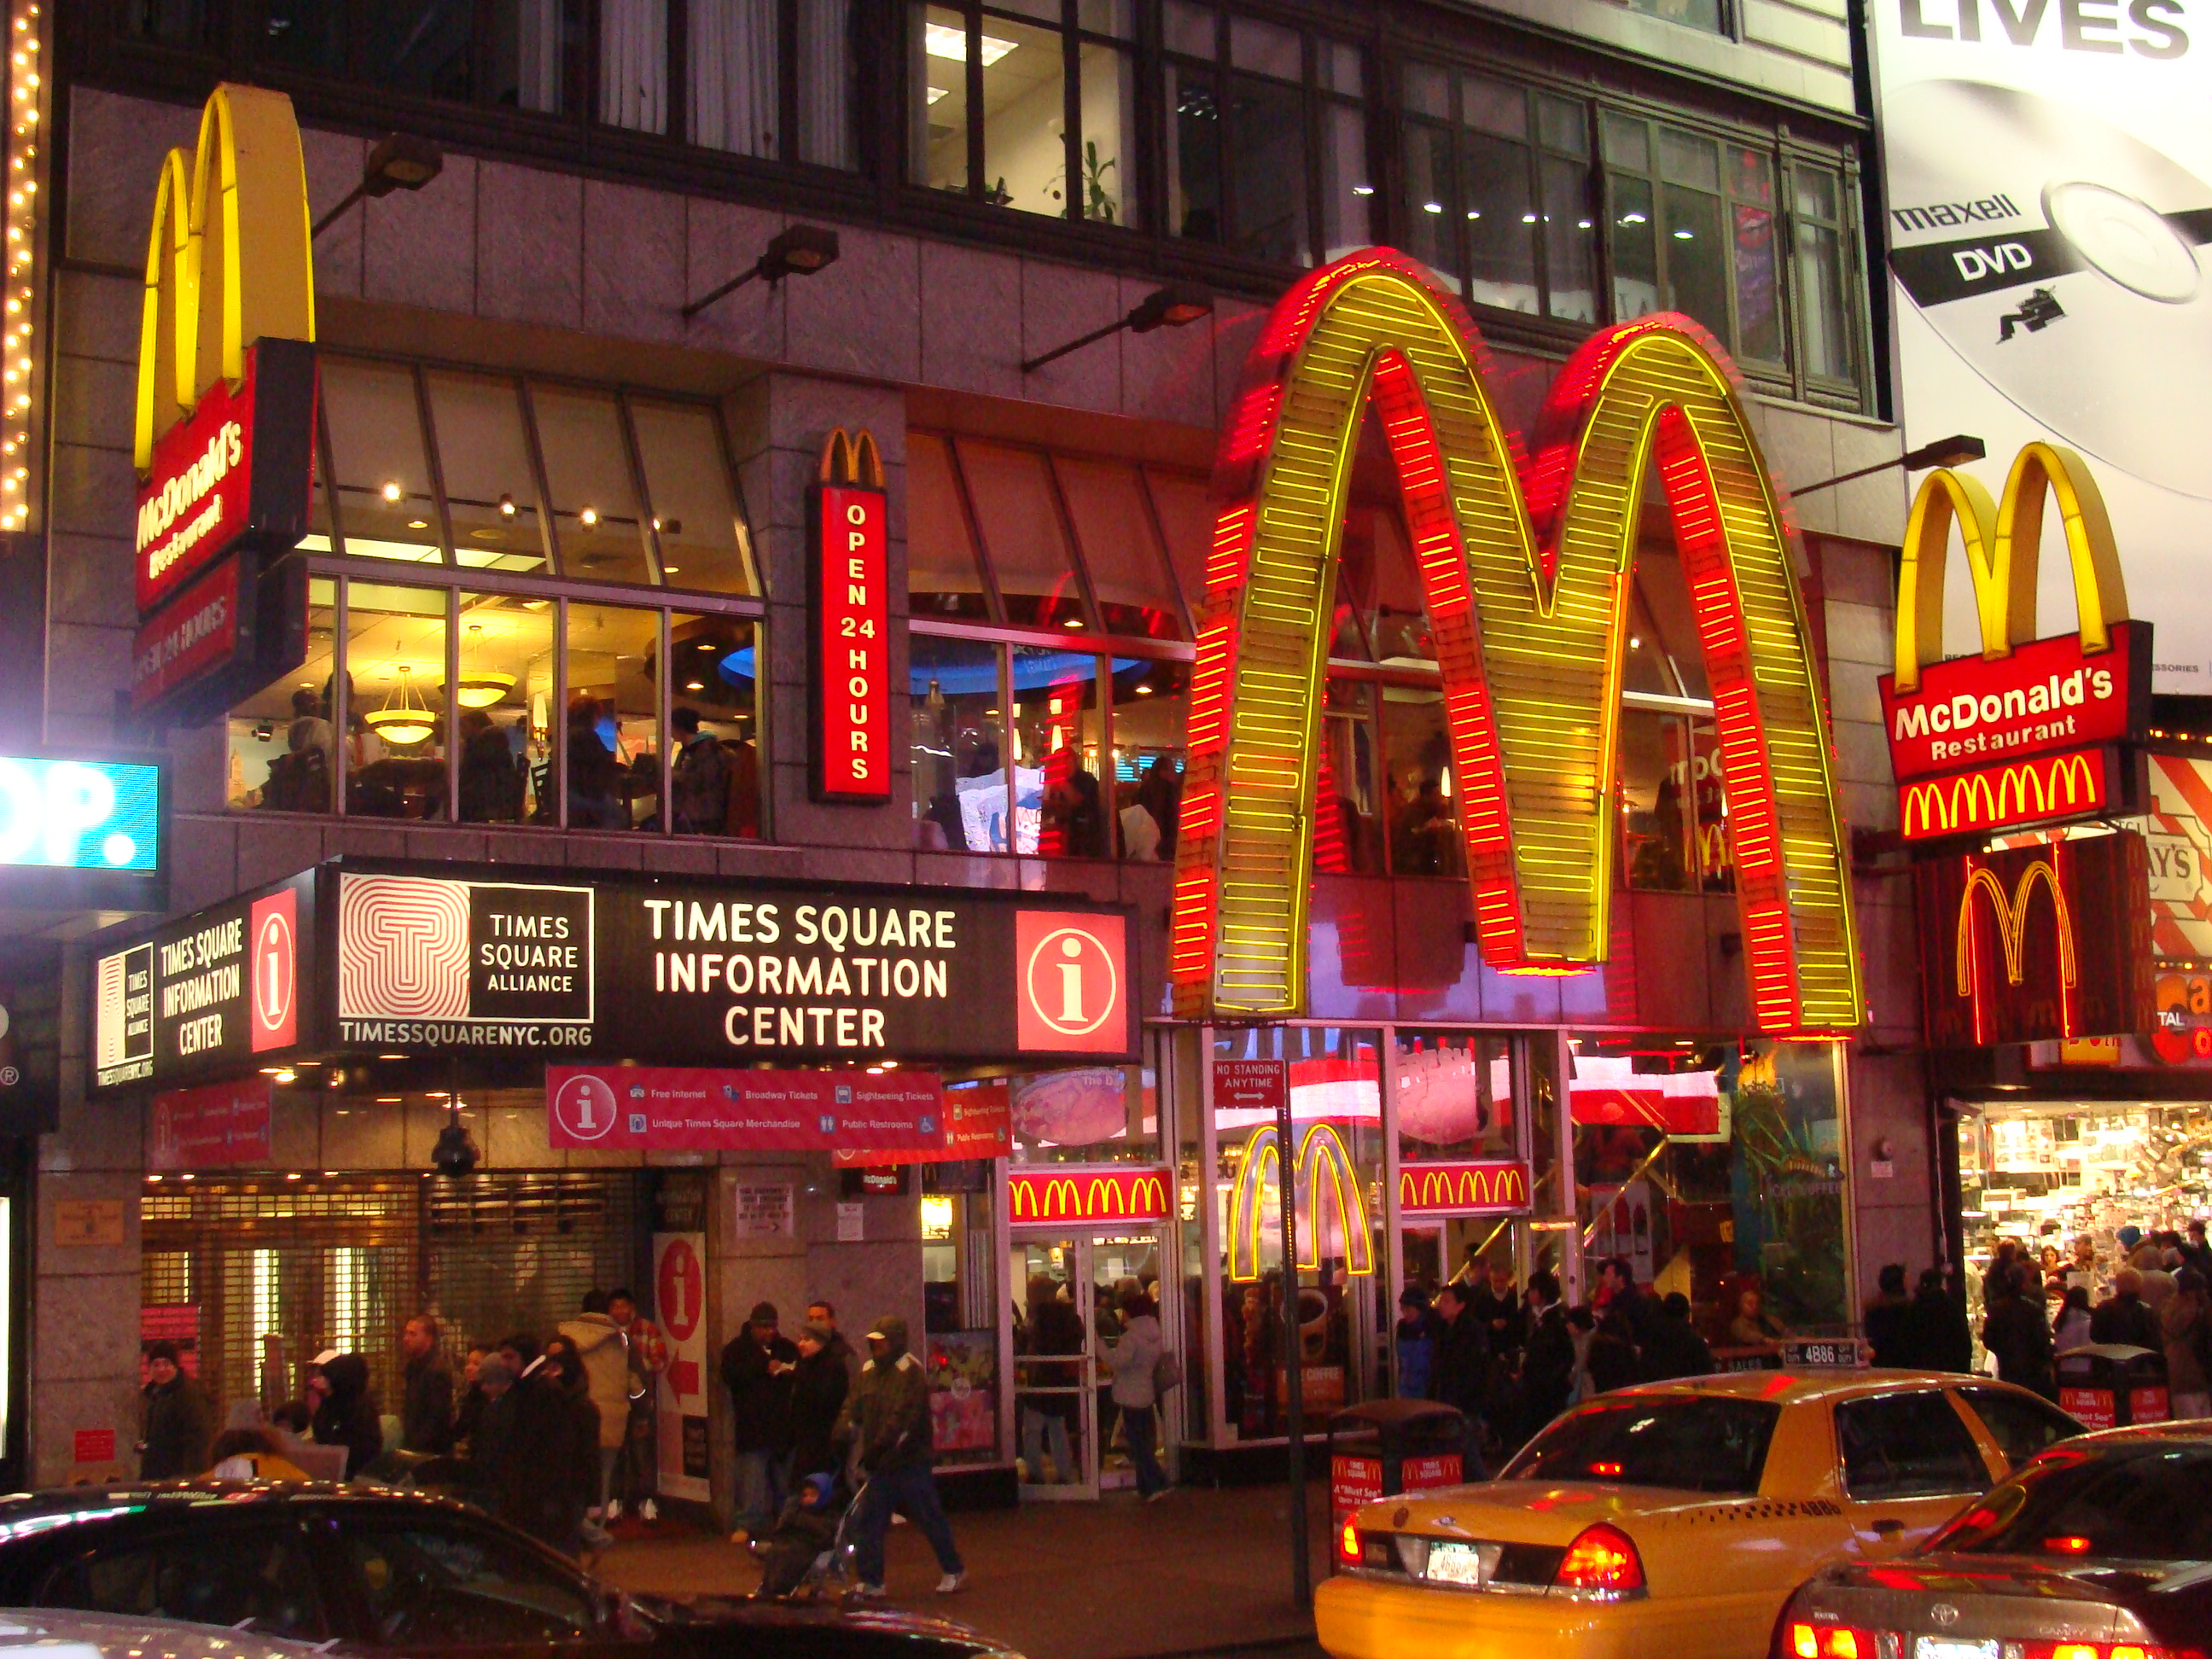 Description mcdonalds times square jpg